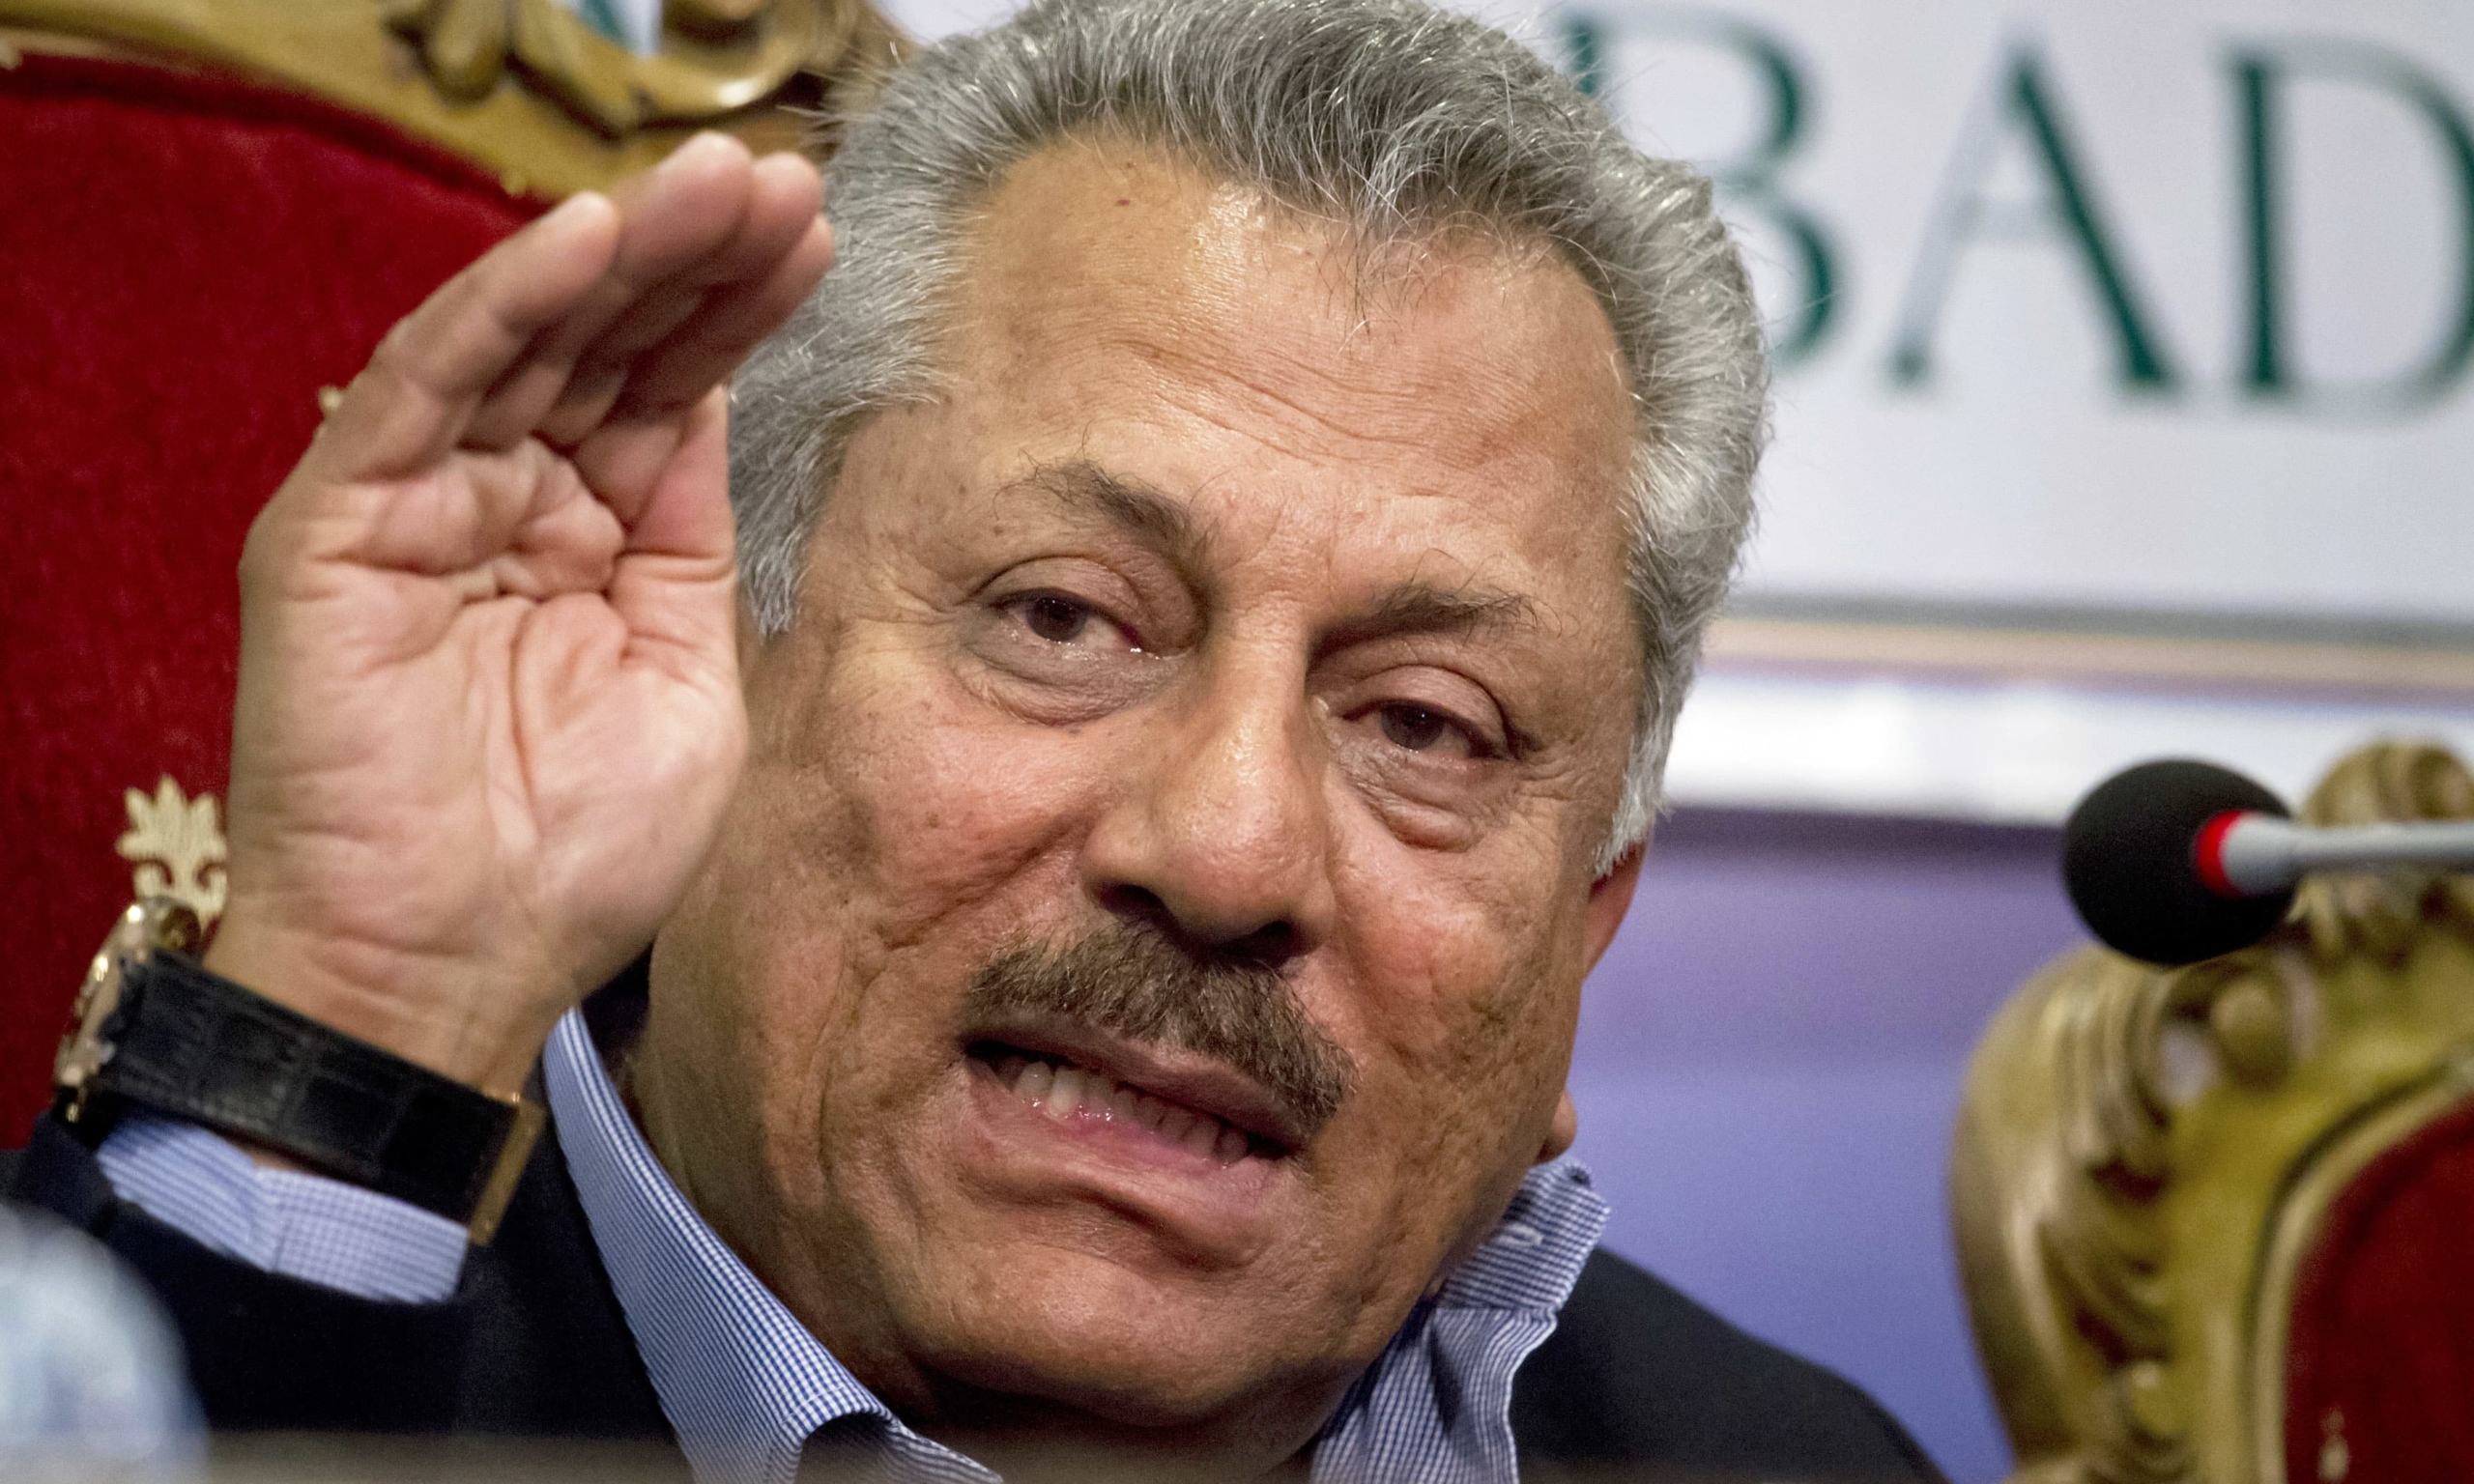 Zaheer Abbas might be in line for PCB's chairman: Reports